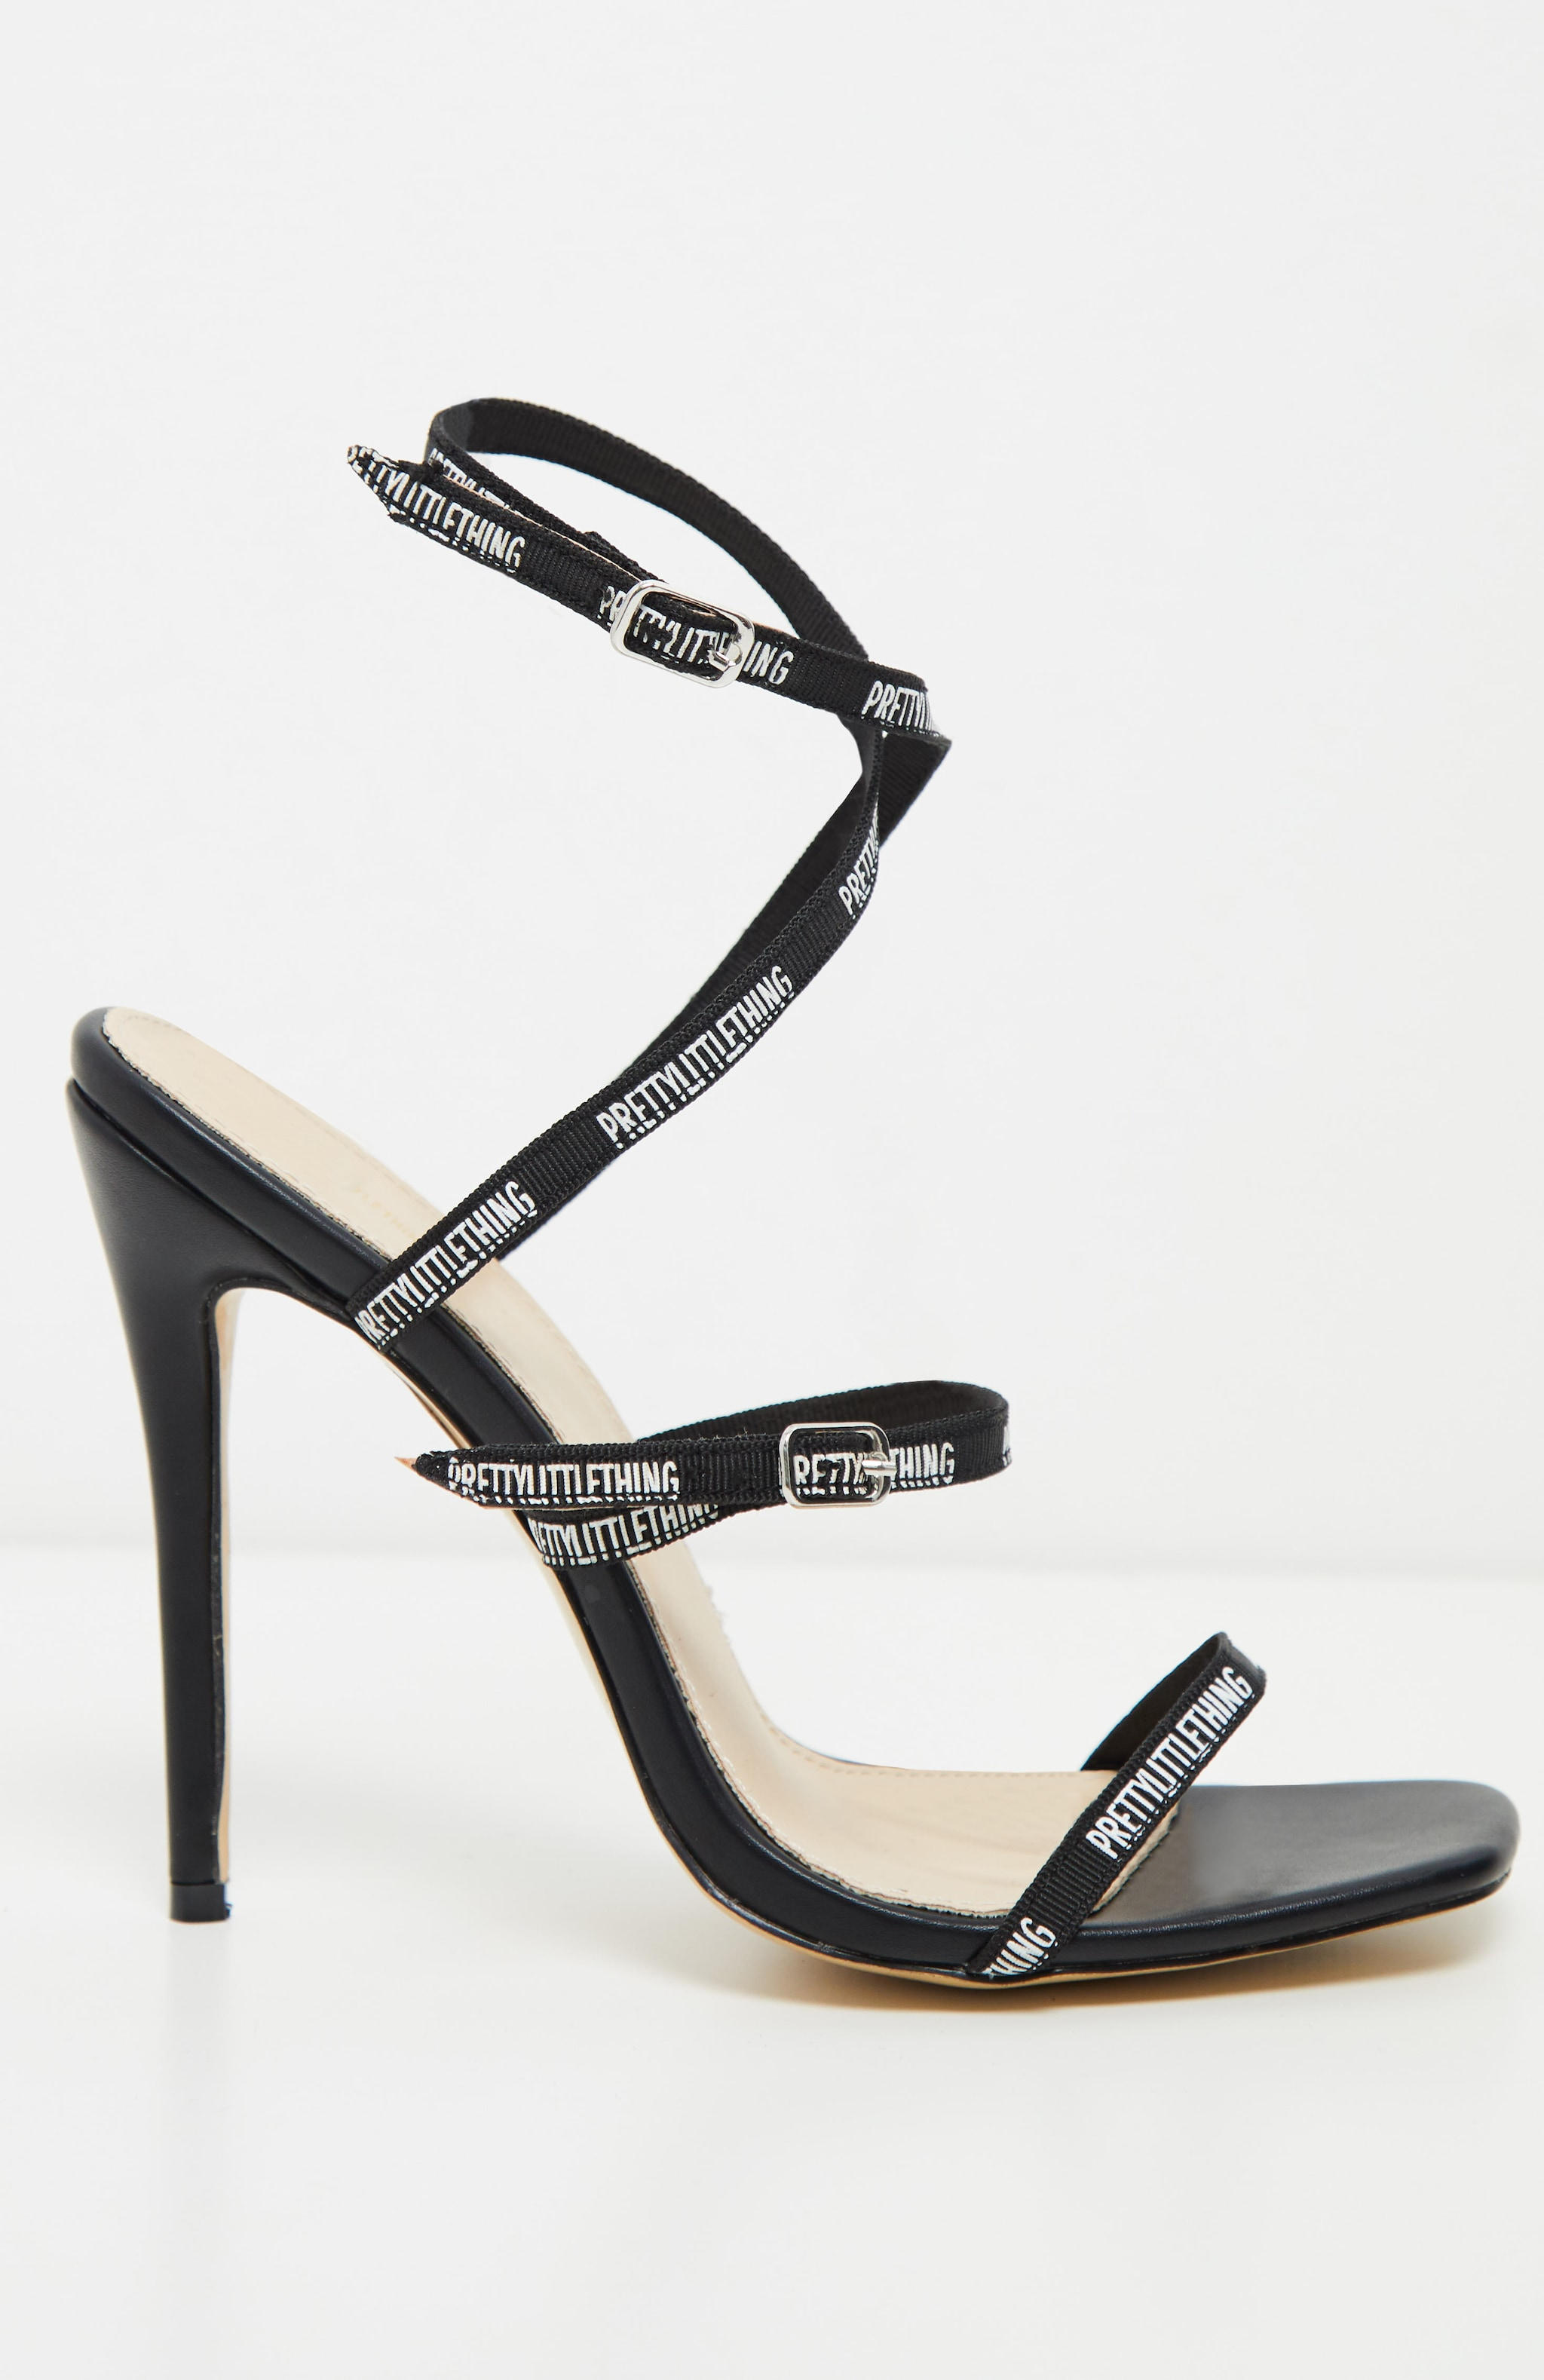 PRETTYLITTLETHING Black Strappy Square Toe Heel 4